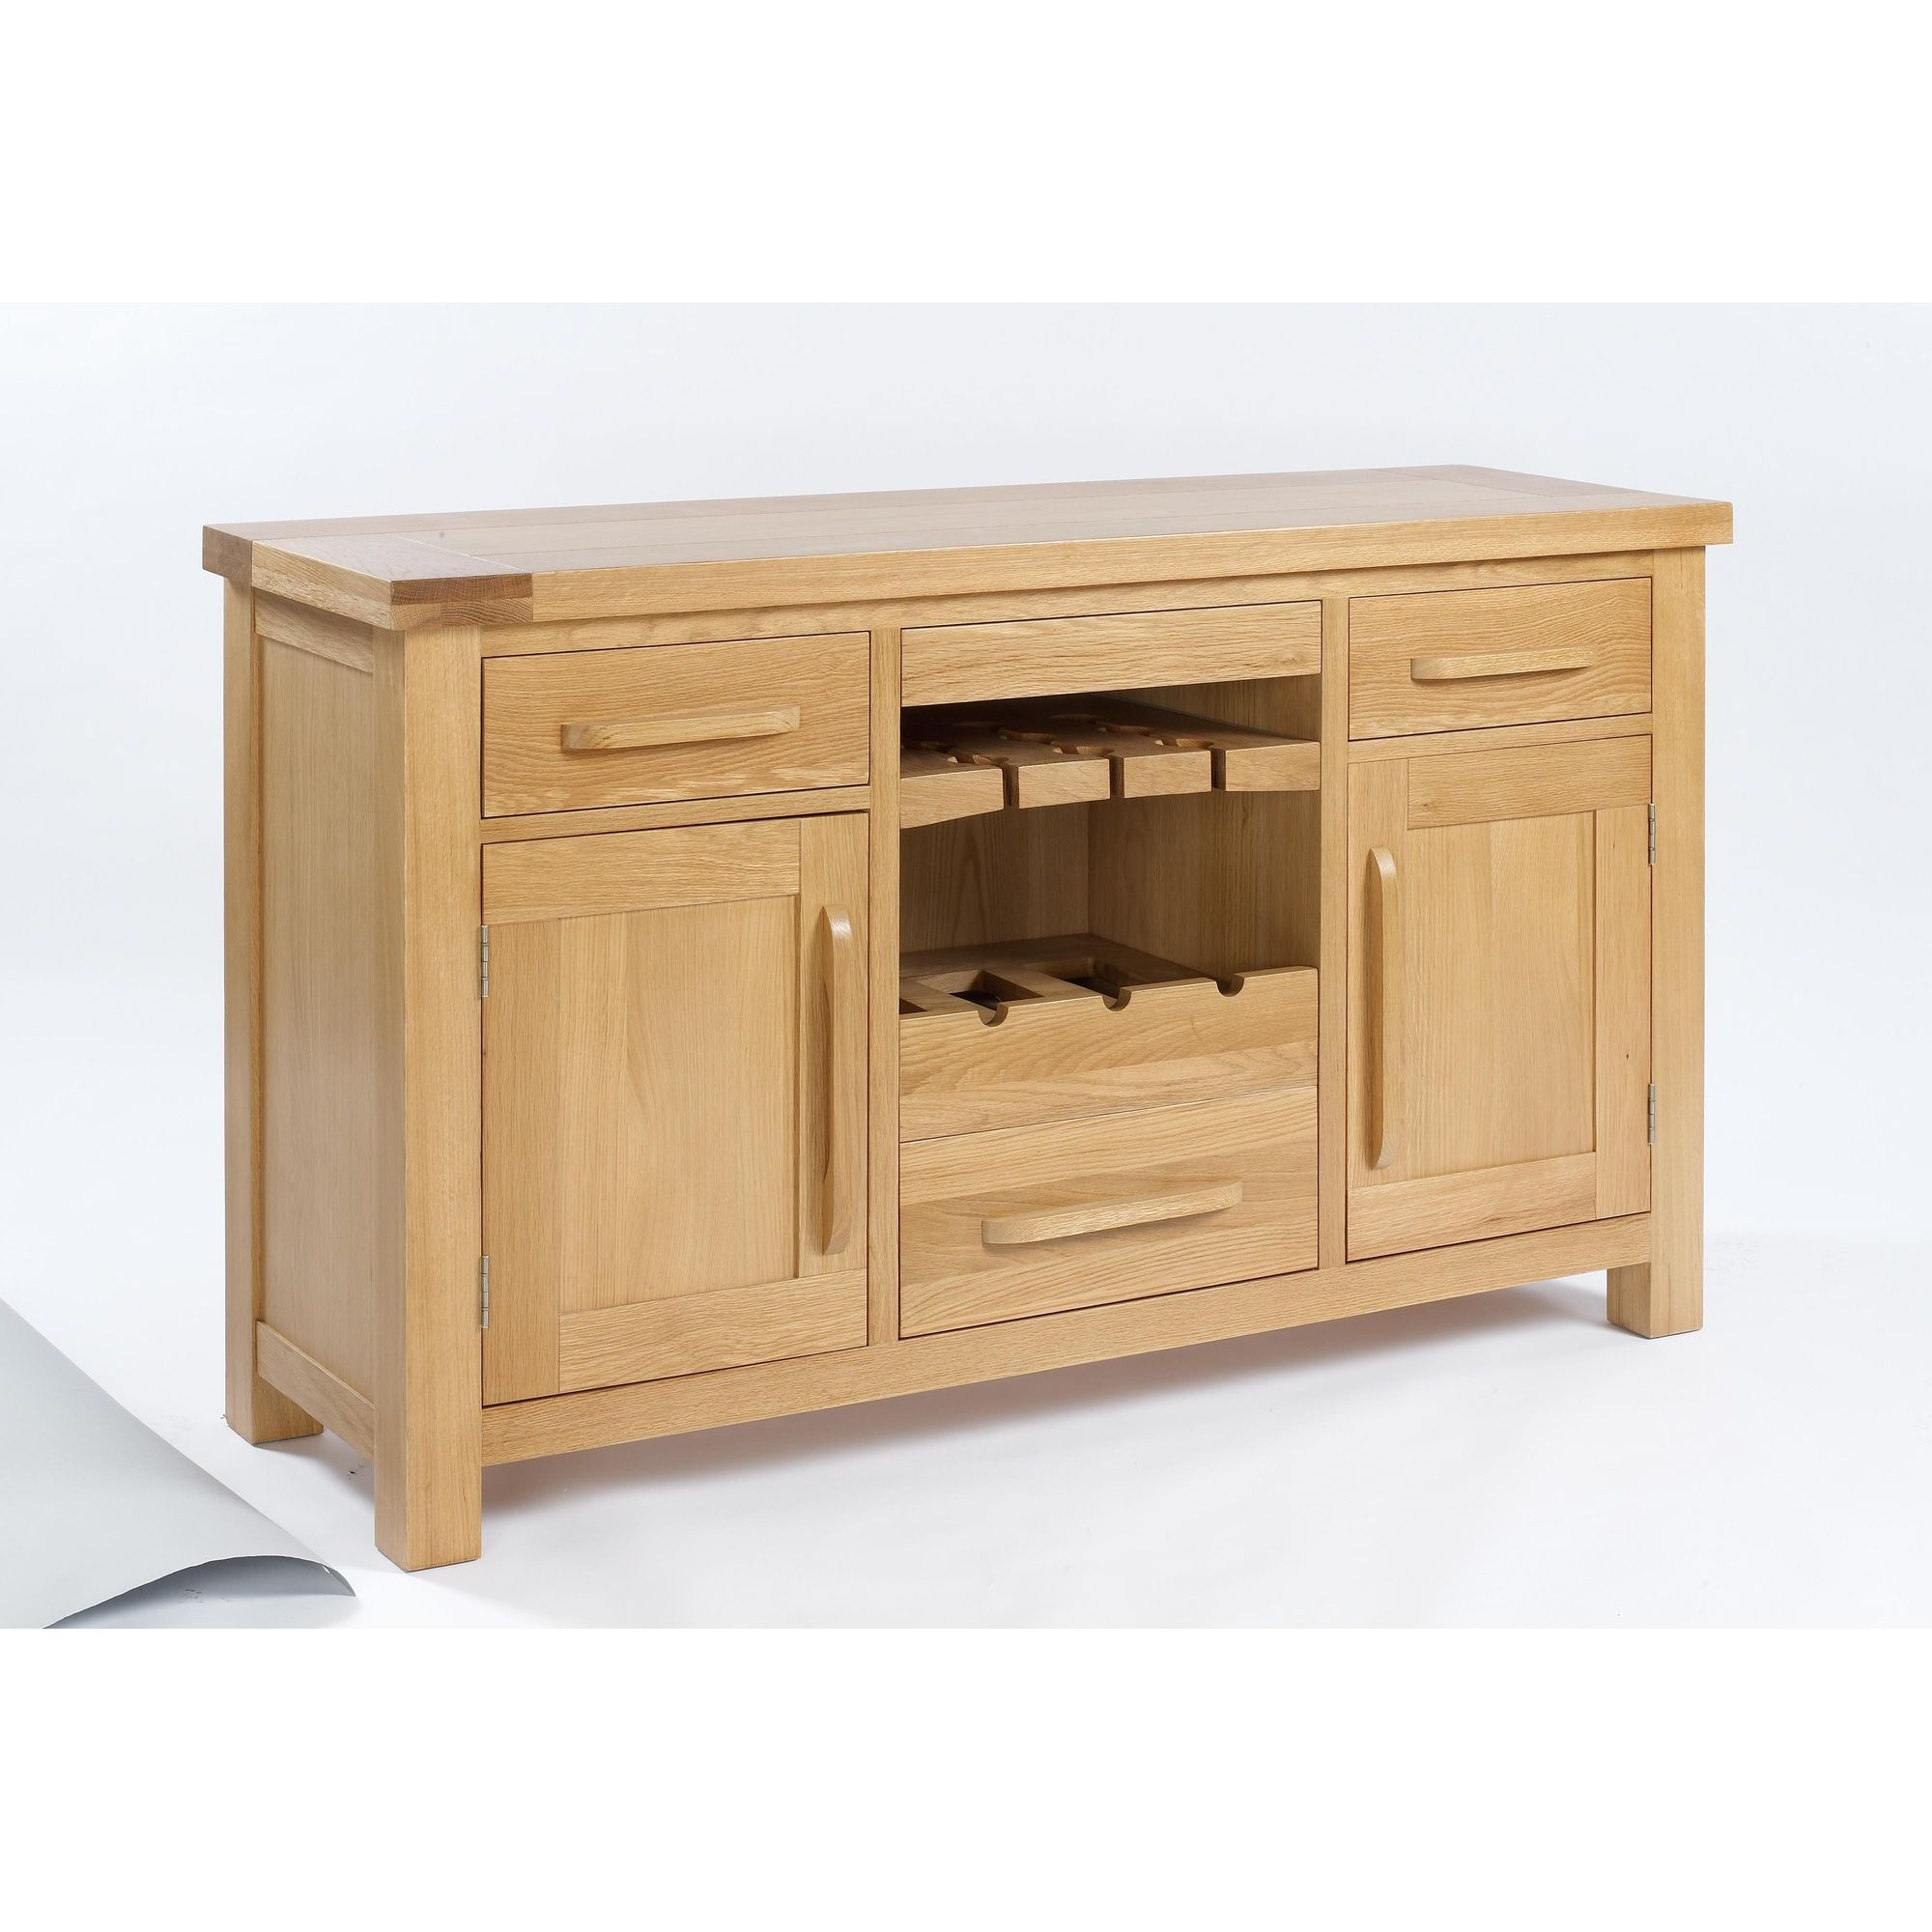 Home Zone Ohio Occasional Sideboard at Tesco Direct